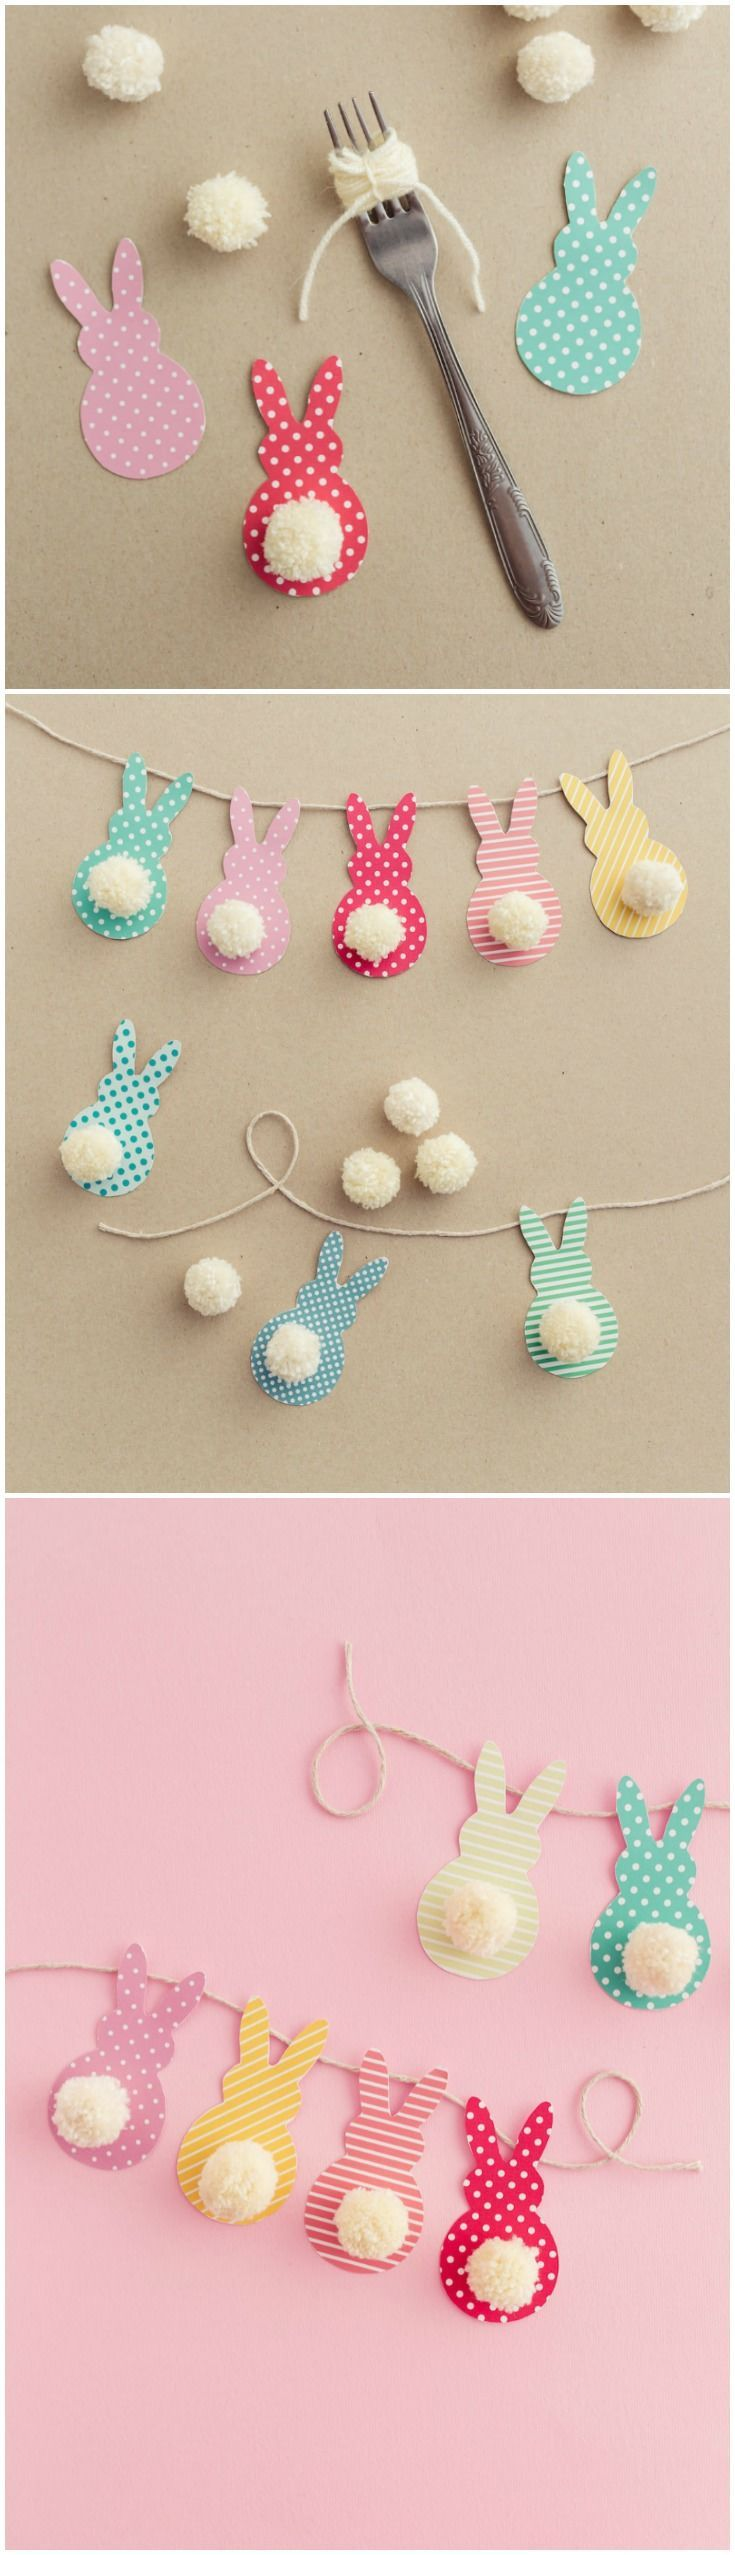 Home Crafts This Colorful DIY Easter Garland Is So Easy